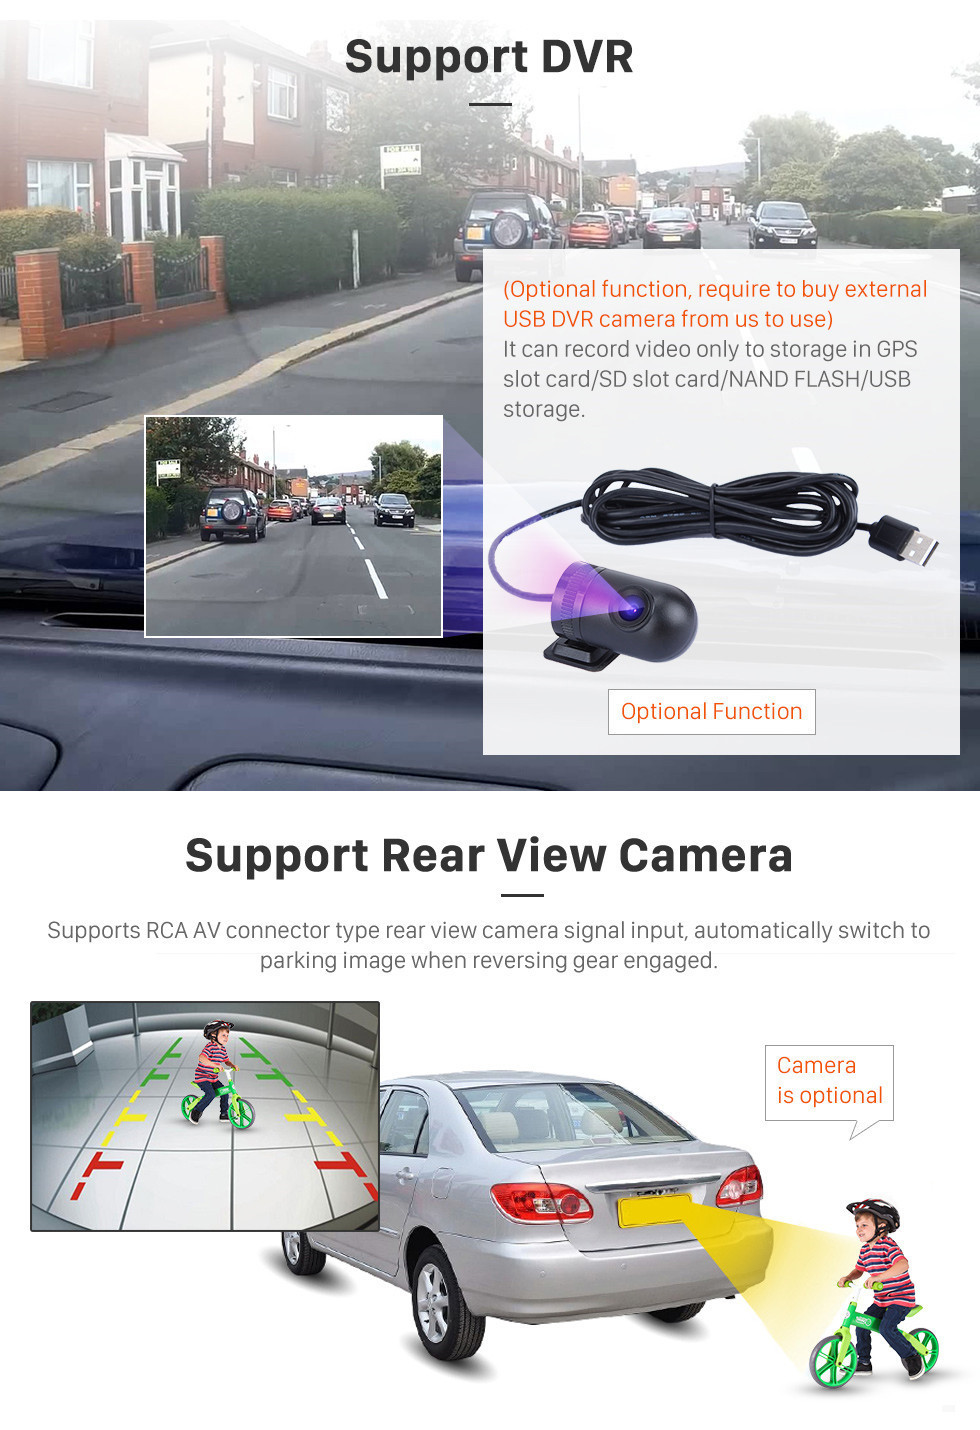 Seicane 10.1 Inch OEM Android 10.0 Radio GPS Navigation system For 2013 2014 2015 VW Volkswagen GOLF 7 Bluetooth HD Touch Screen WiFi Music SWC TPMS DVR OBD II Rear camera AUX 1080P Video USB Carplay